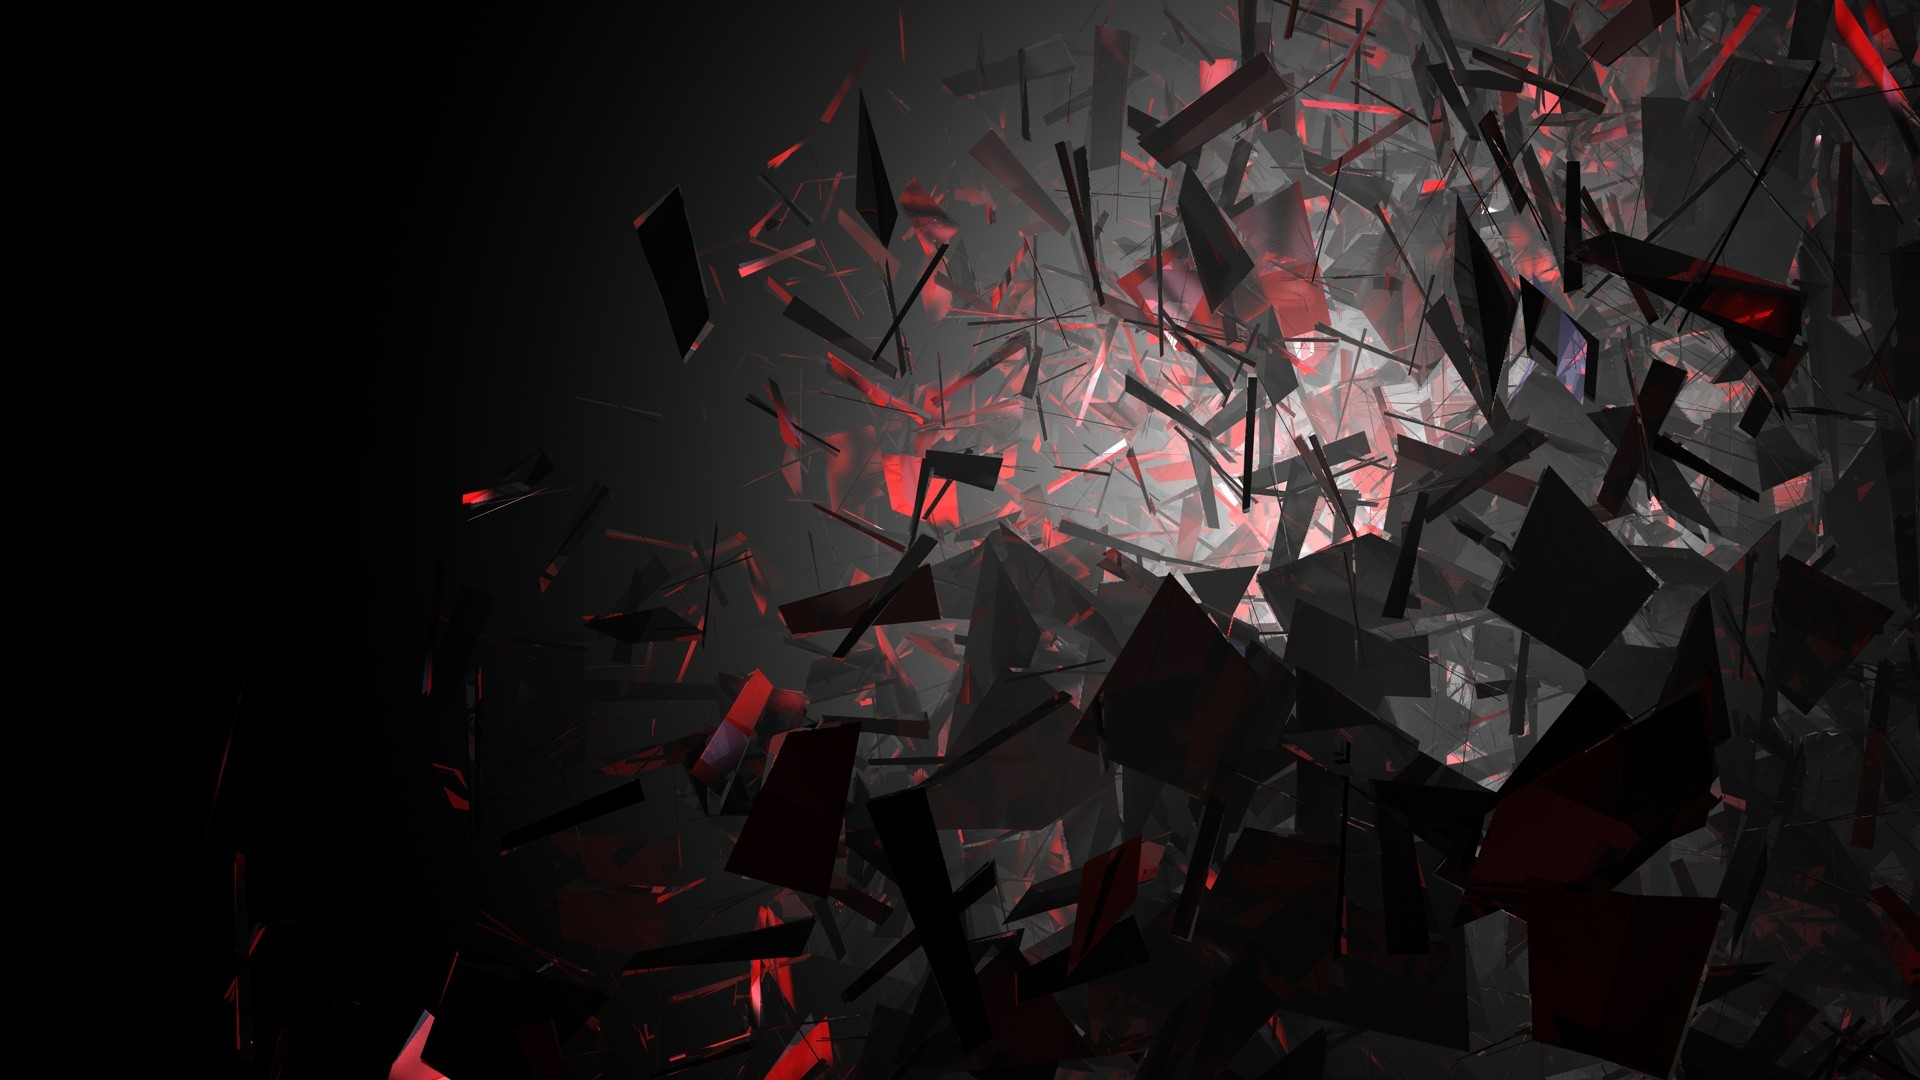 Black Abstract HD Wallpapers: Find best latest Black Abstract HD Wallpaper  for your PC desktop background & mobile phones.